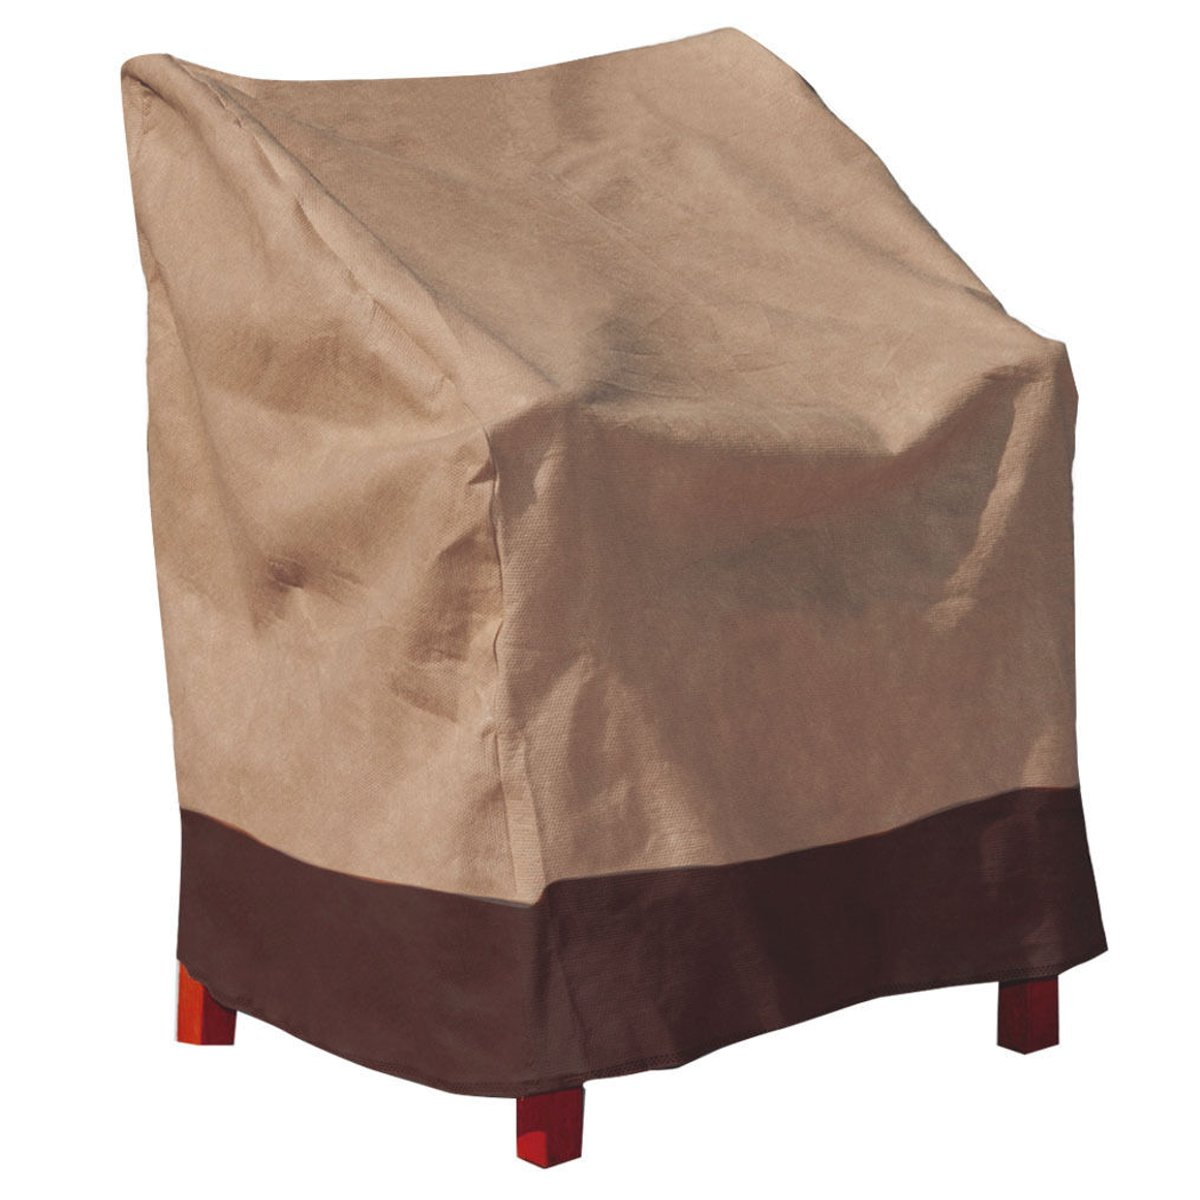 Brown Polyester Waterproof Patio Chair Cover Single High Back Chair Covers Yard Furniture Protective Cover Textiles Accessories(China (Mainland))